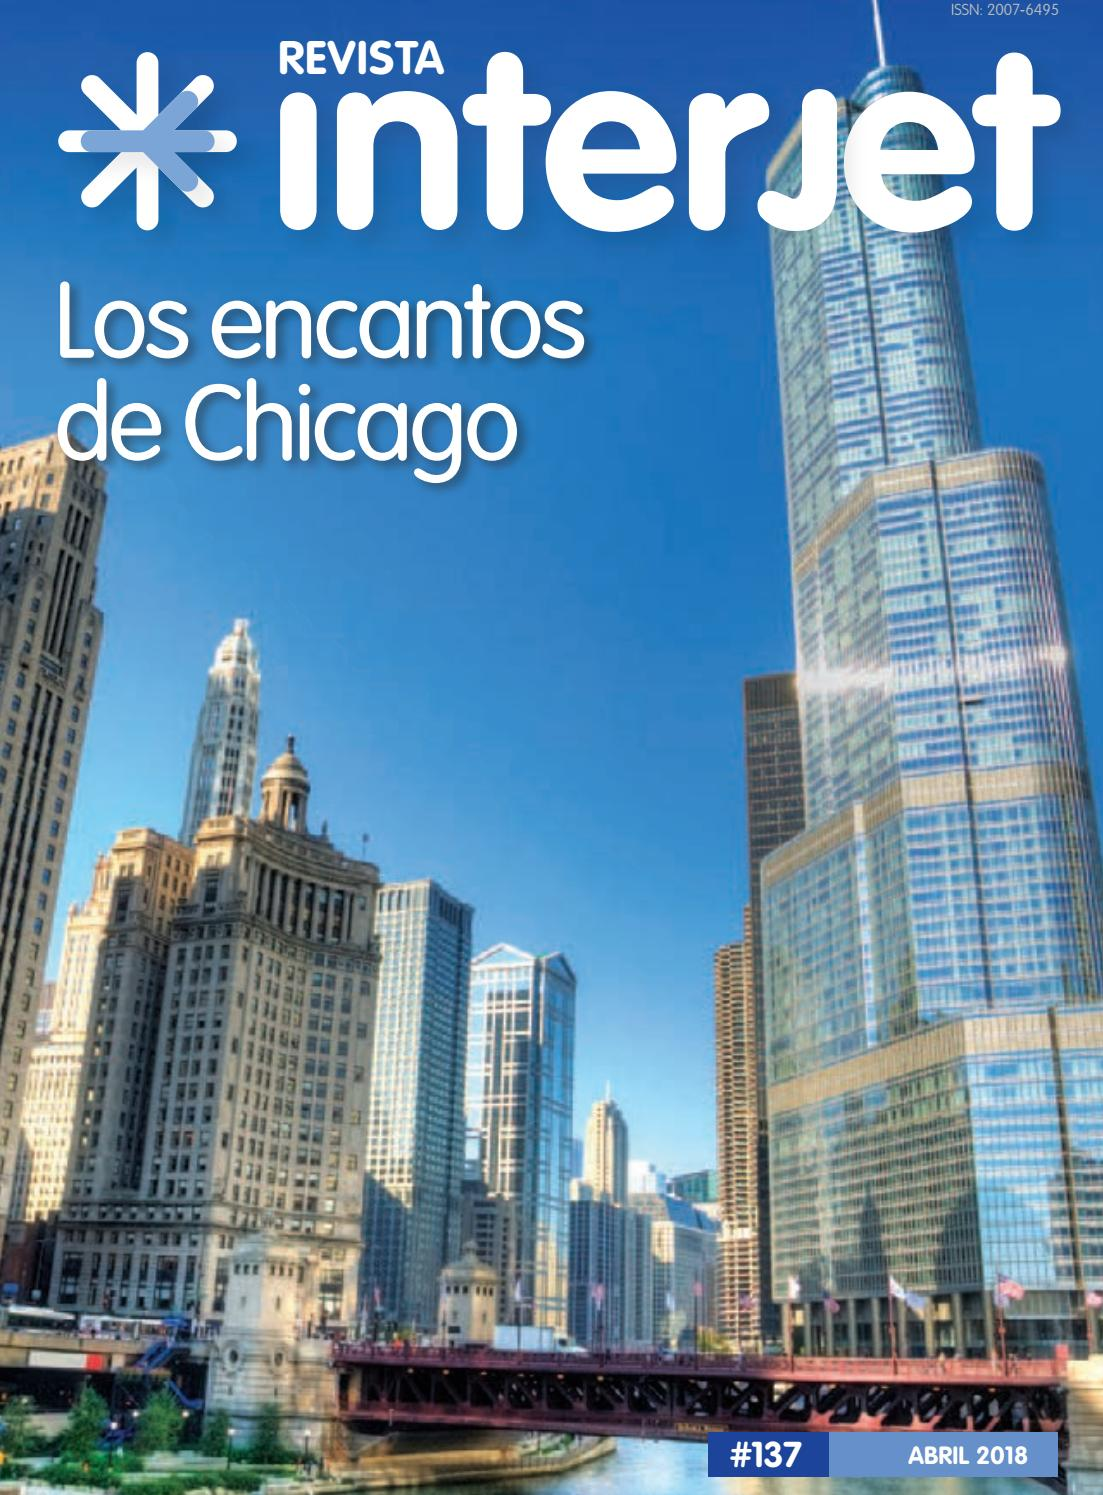 Revista Interjet Abril 2018 by Interjet - issuu